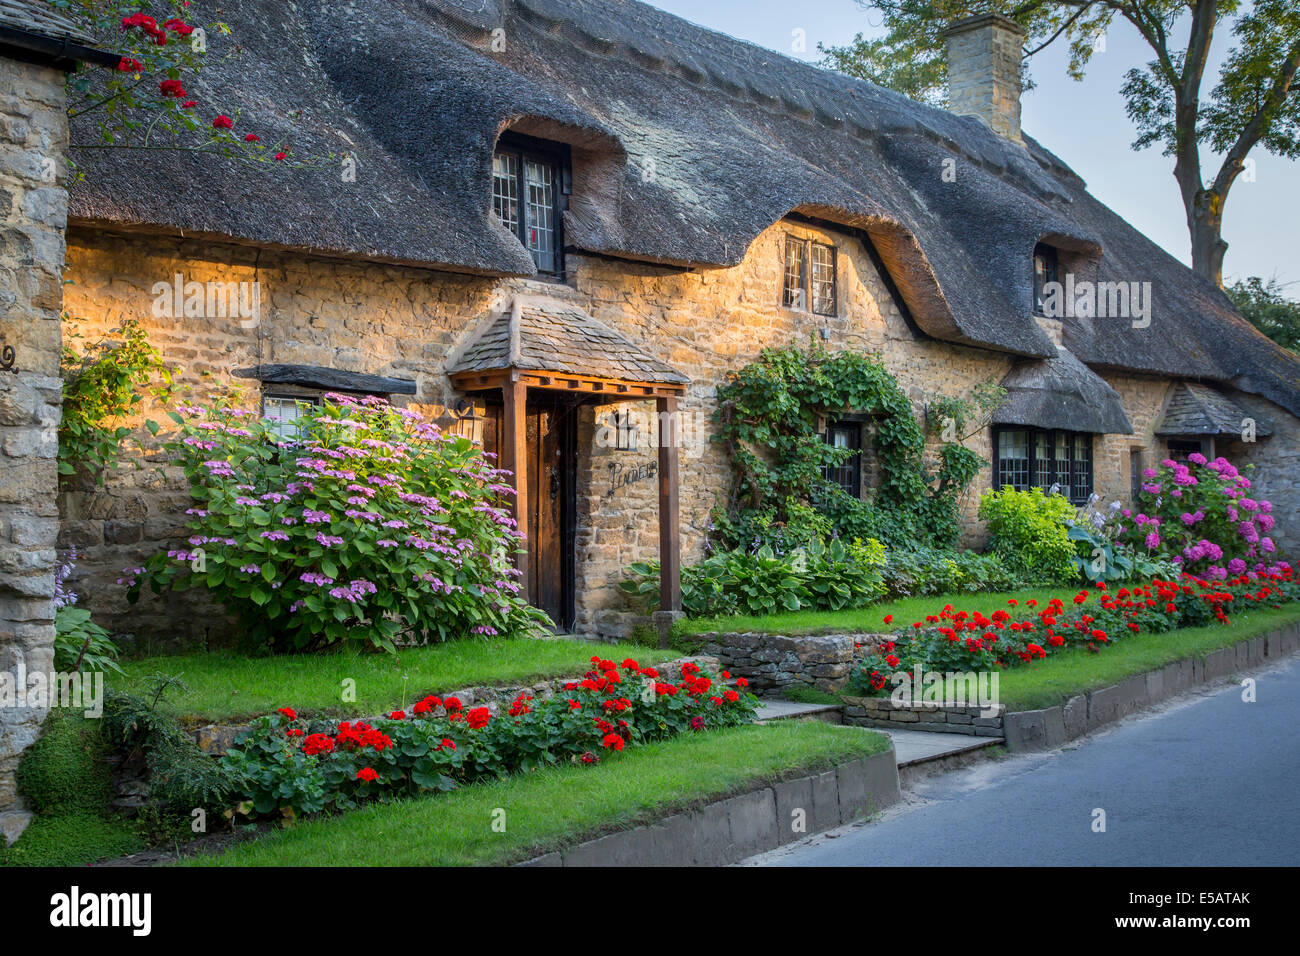 Thatch roof cottage in Broad Campden, the Cotswolds, Gloucestershire, England - Stock Image